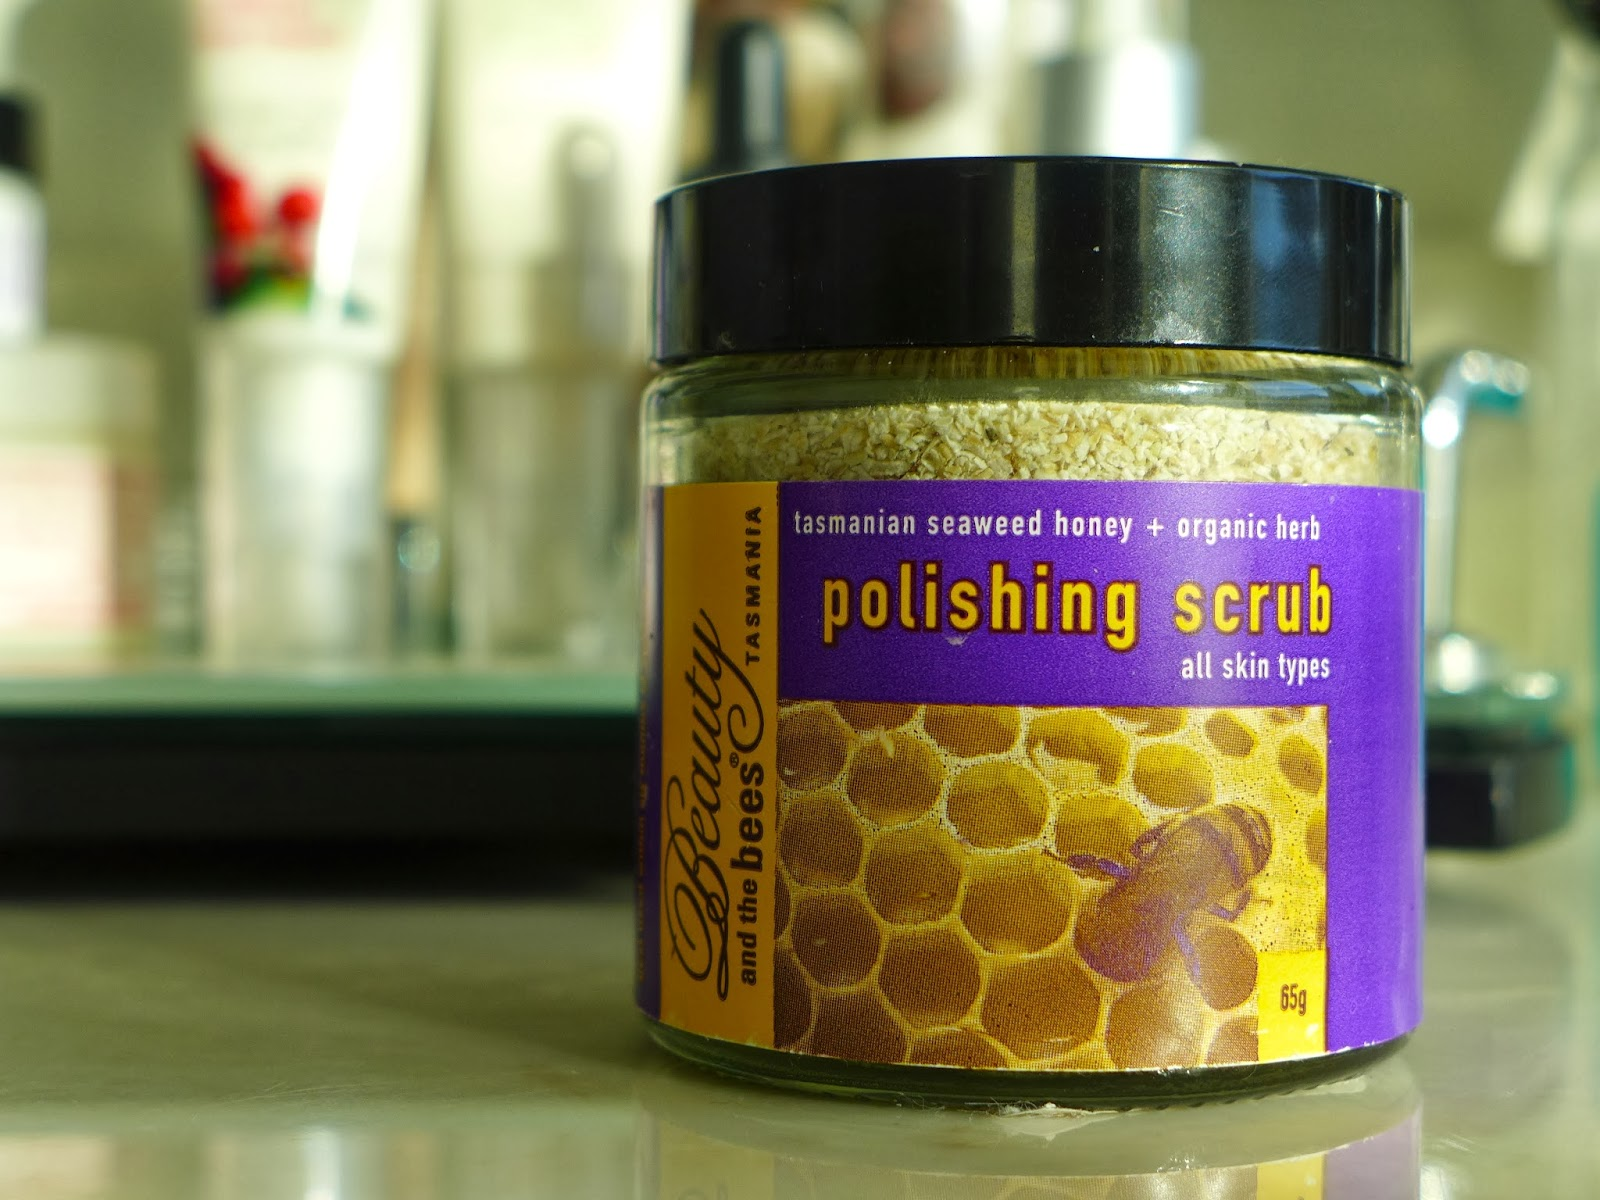 Beauty and the Bees Honey and Herb Polishing Scrub